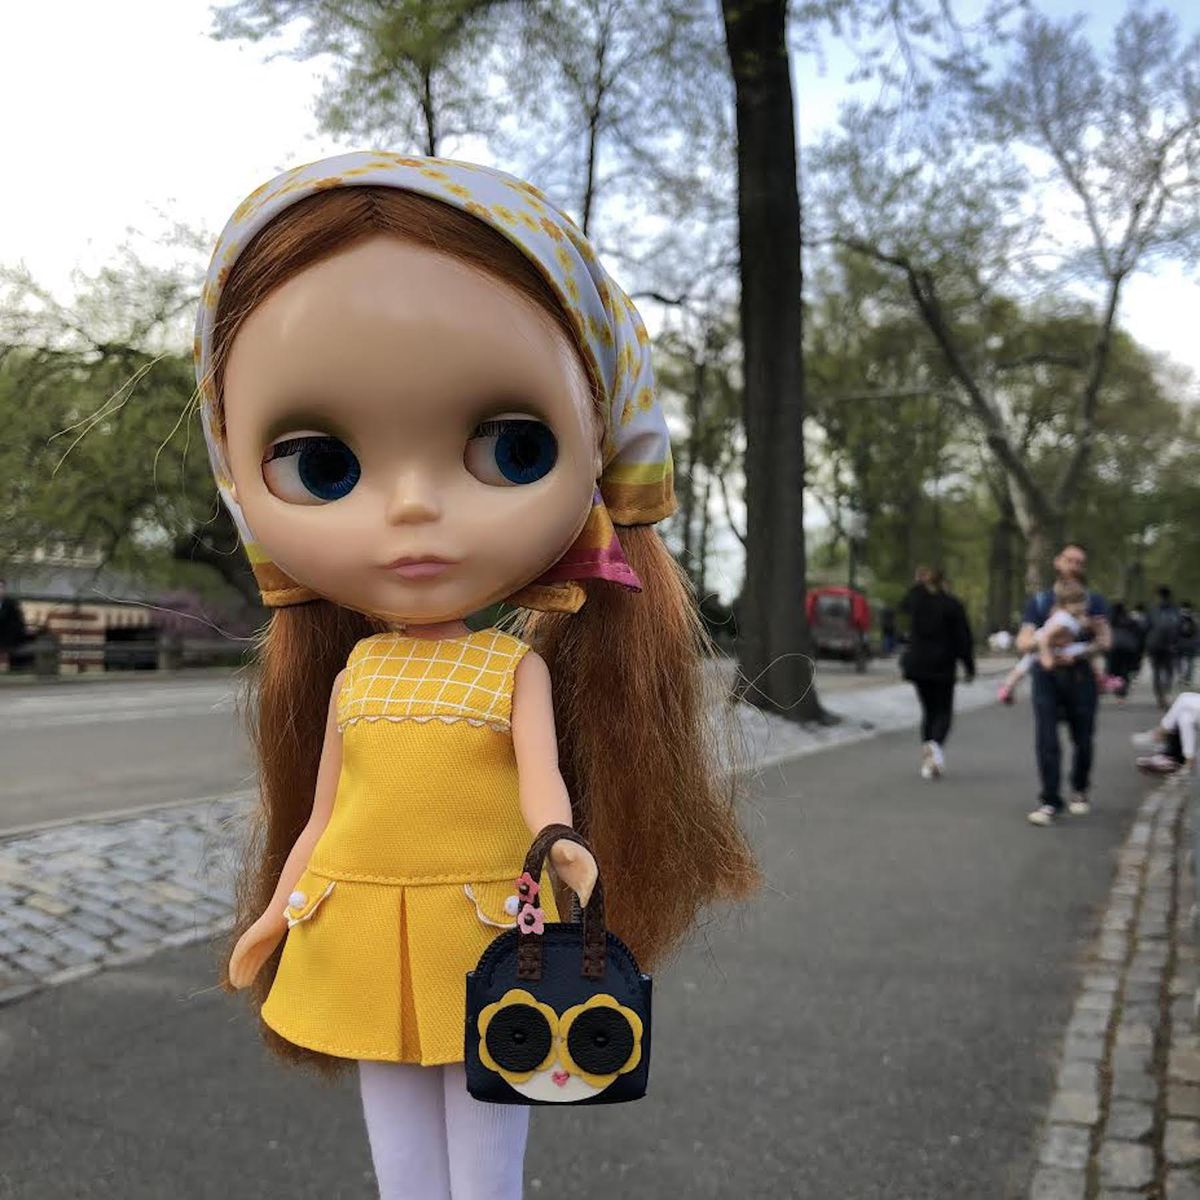 """""""There's something innocent and sweet"""" about Blythe dolls, said artist Sarah Thompson, who customizes the dolls for sale through her Etsy shop BunnyGirlBlythe."""